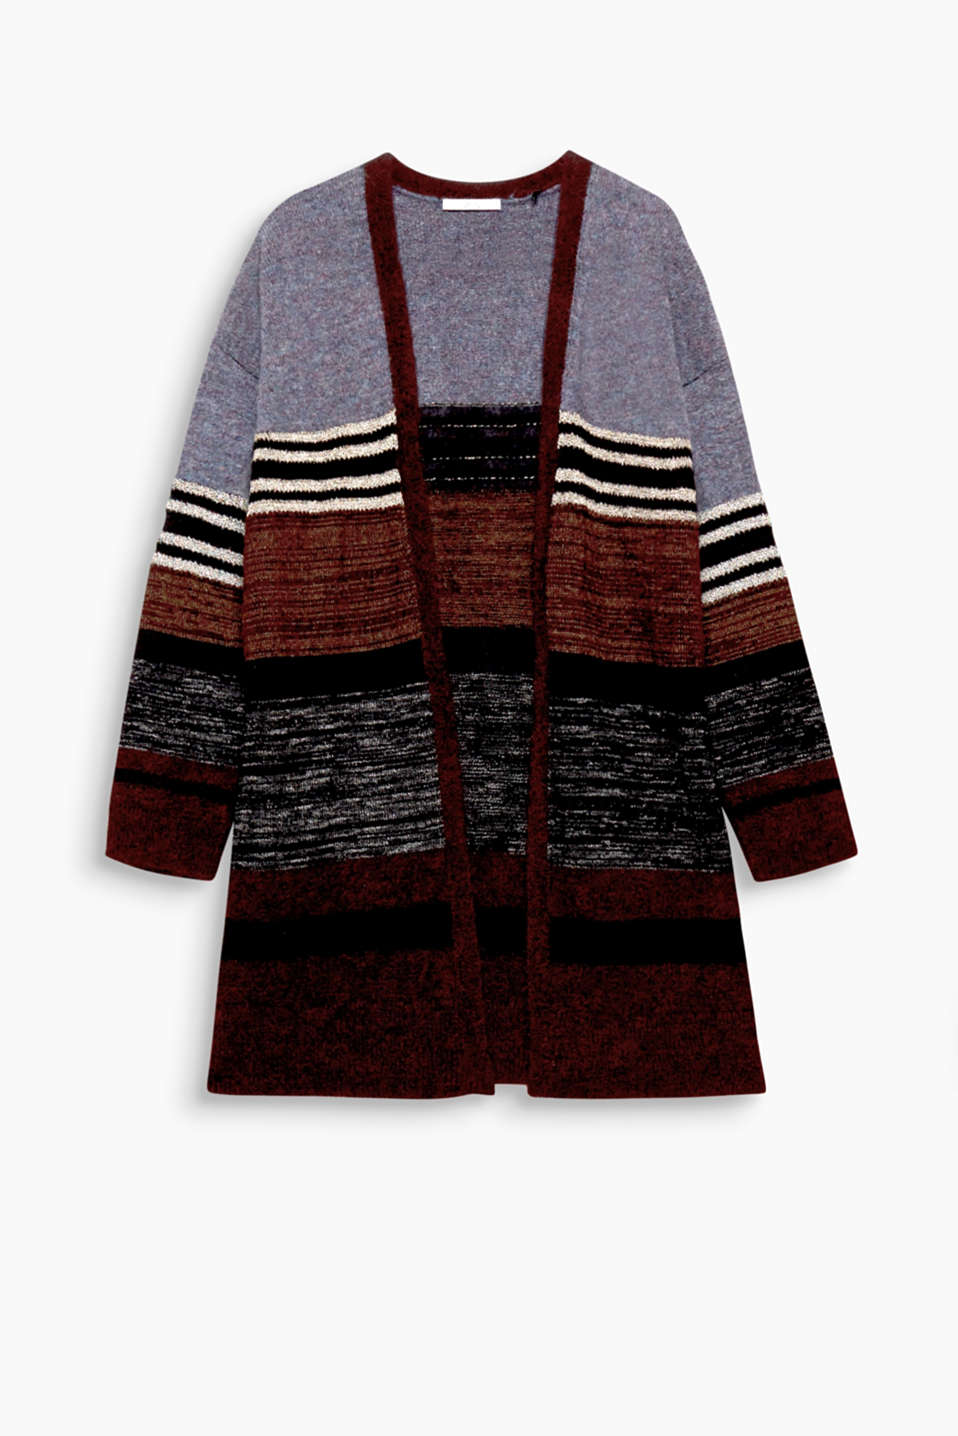 This soft, open-fronted cardigan impresses with its diverse stripes and glittering lurex.